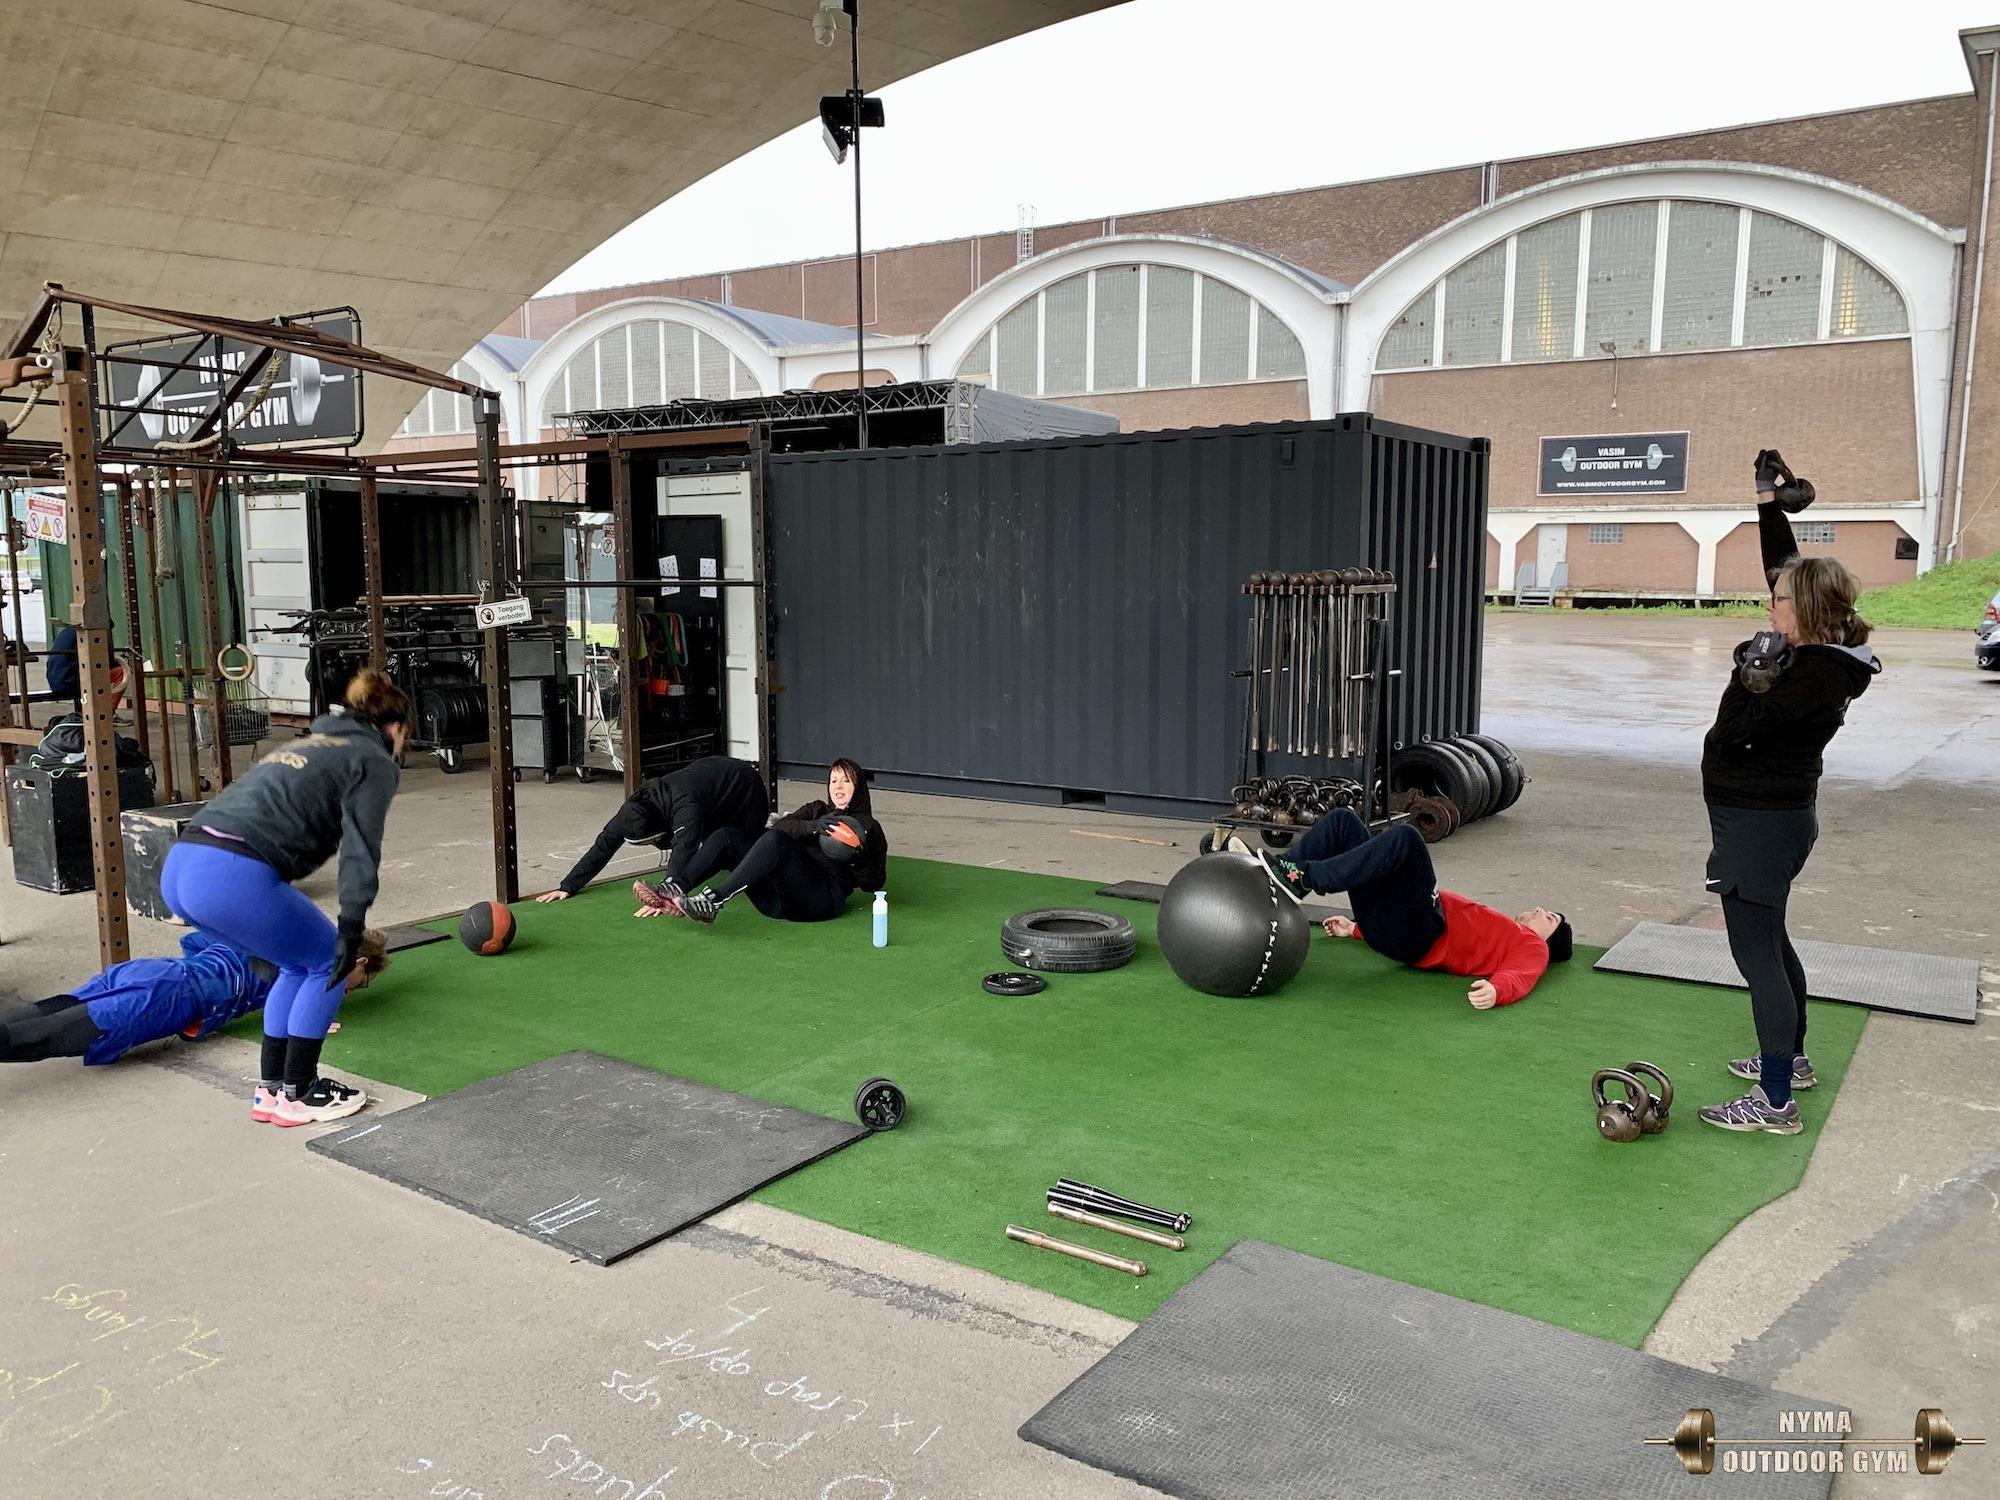 NYMA OUTDOOR GYM 29-01-2020